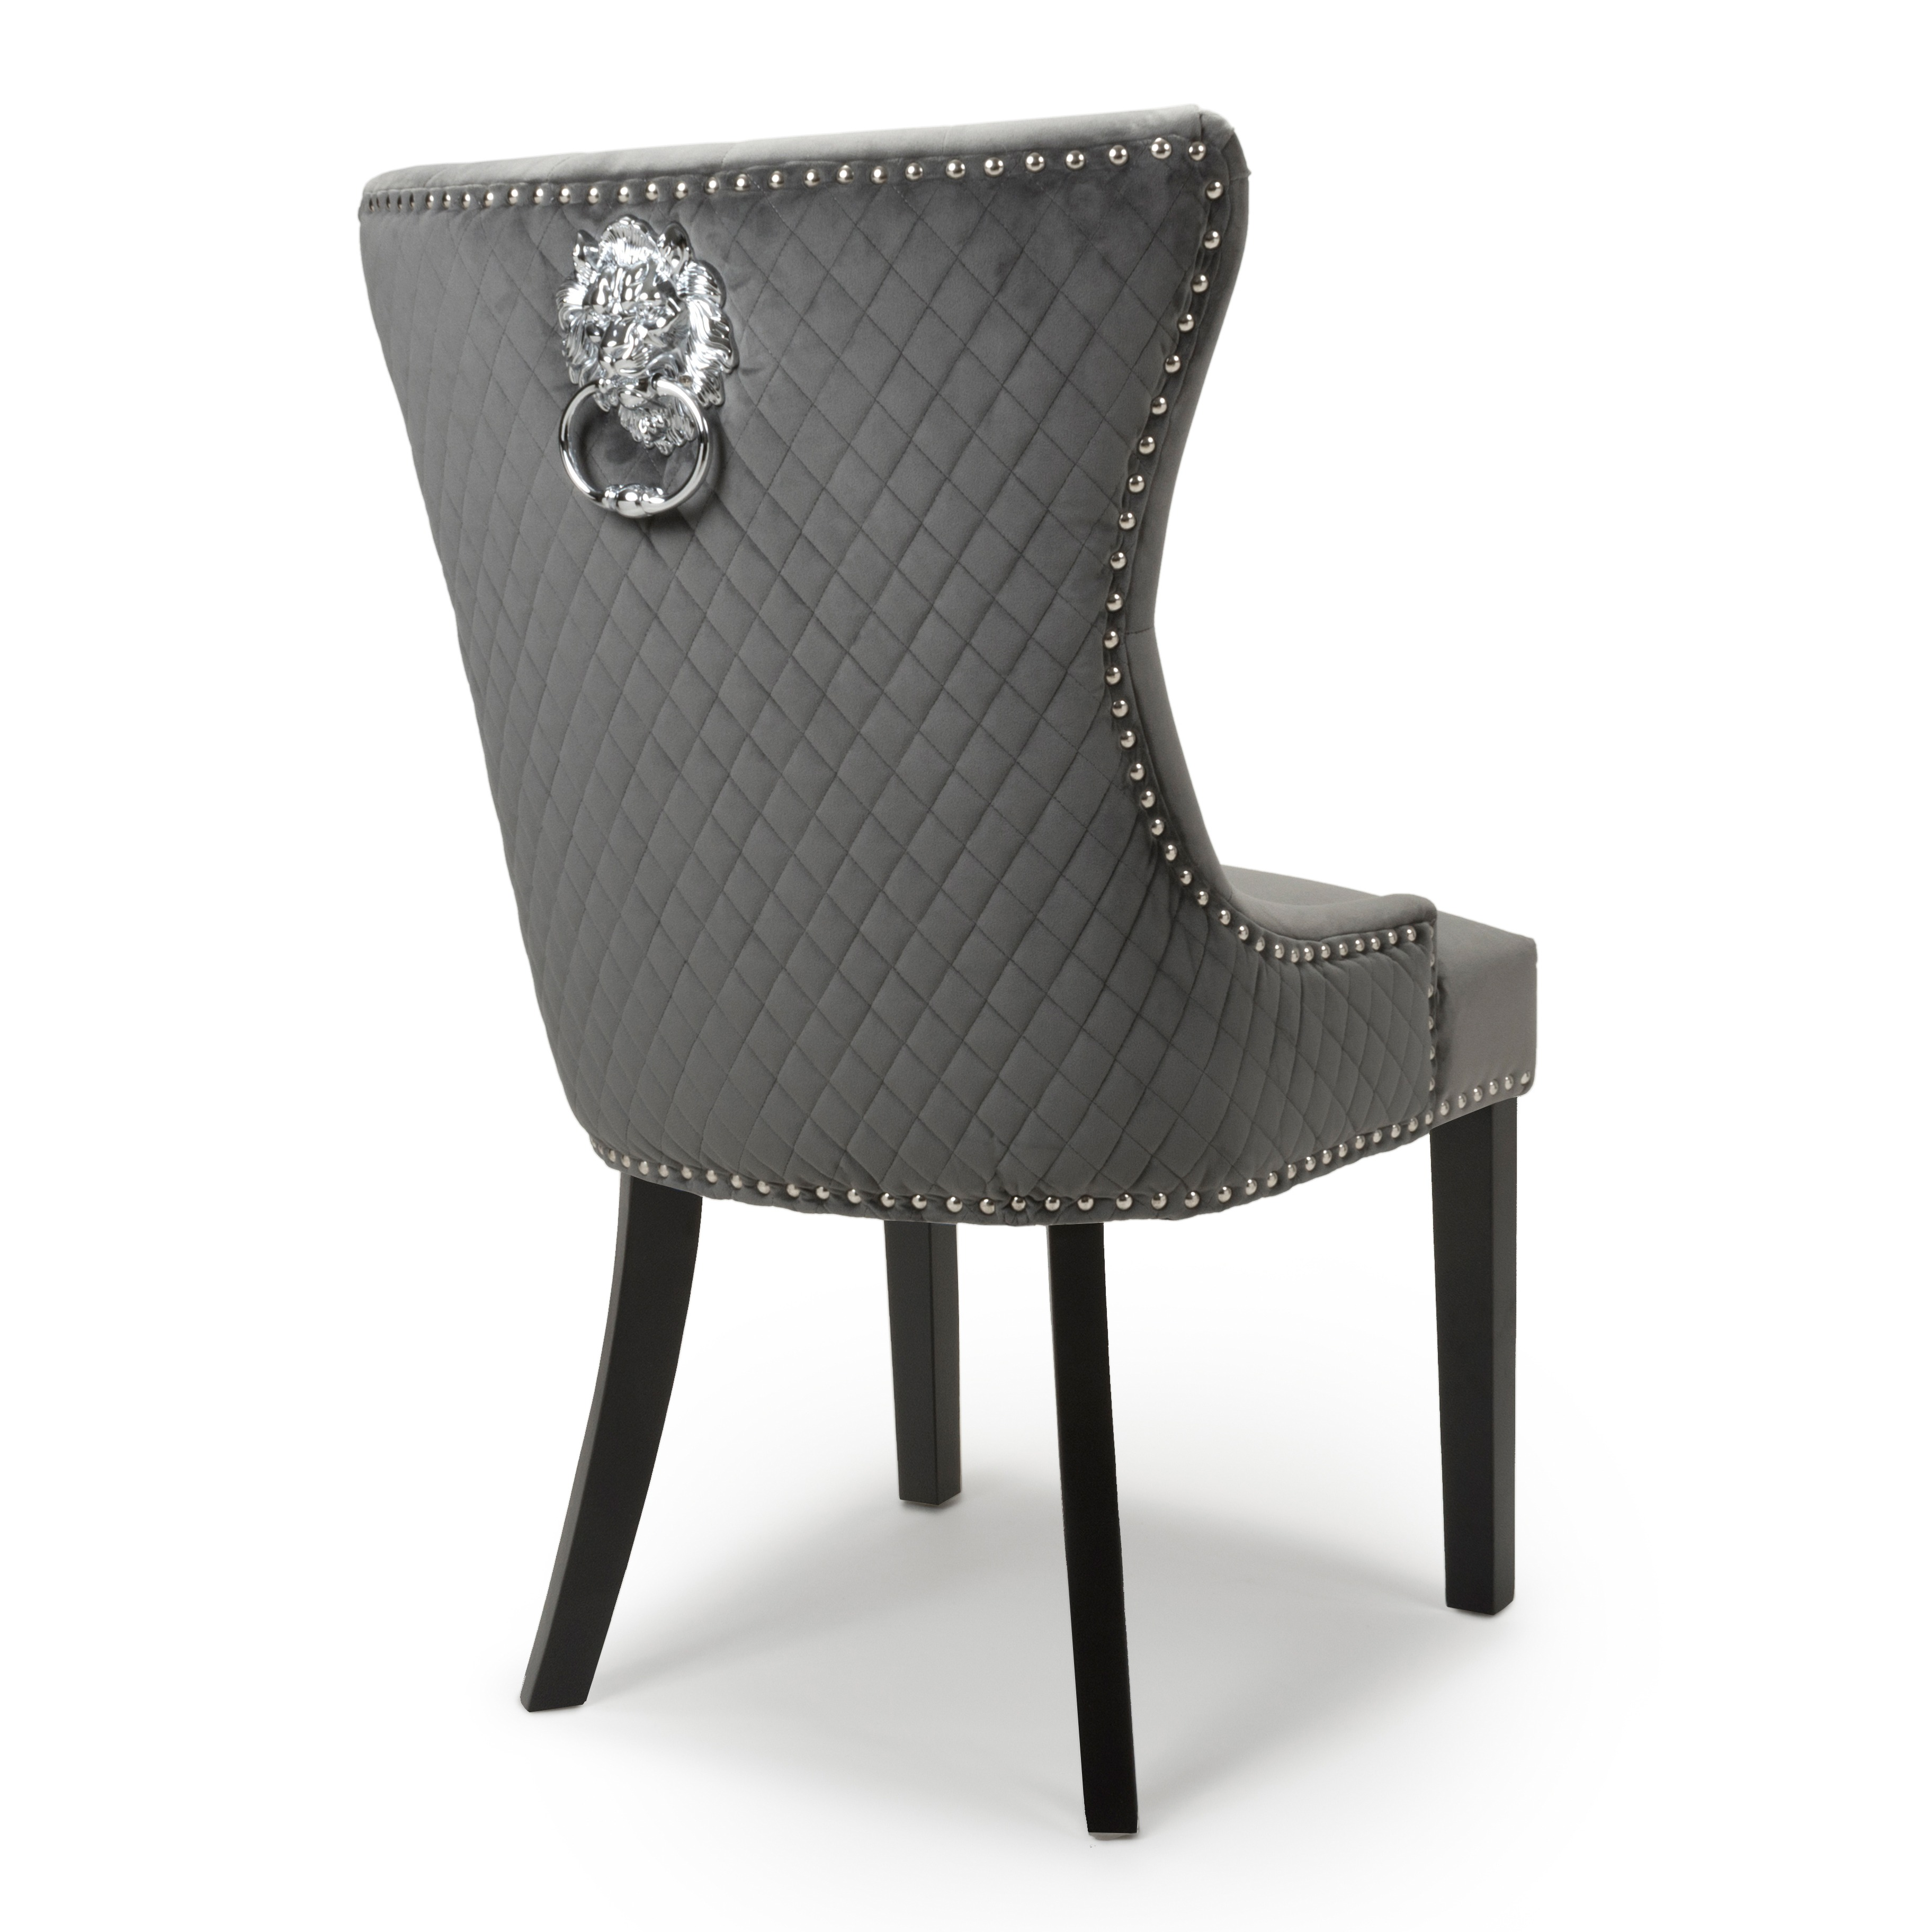 Peachy Lion Head Grey Velvet Dining Chair Black Legs Gamerscity Chair Design For Home Gamerscityorg